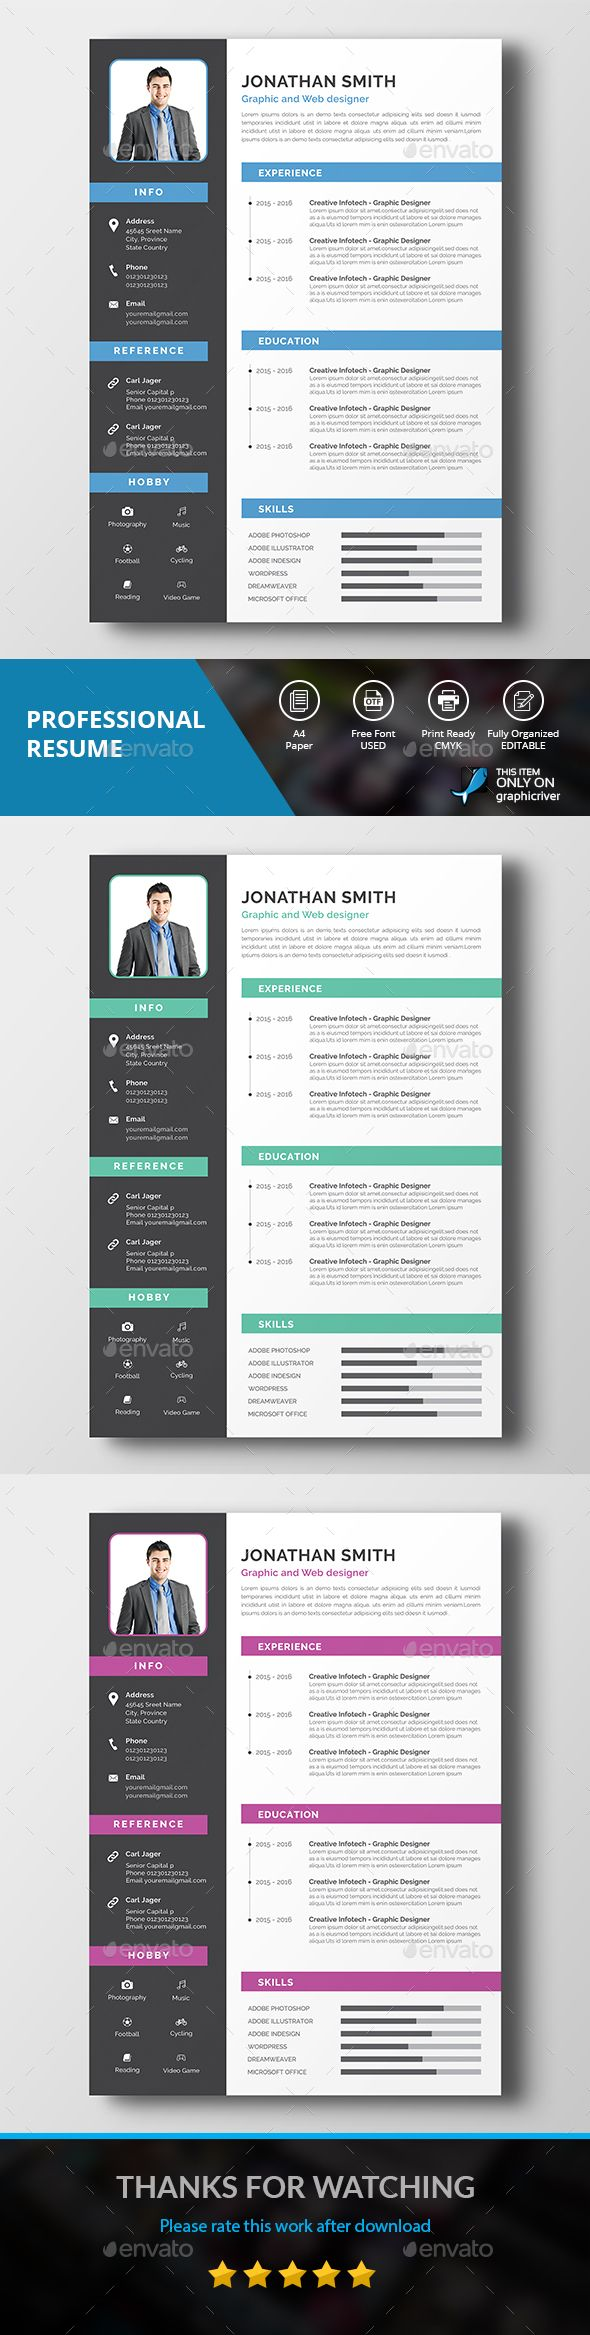 professional resume design template resumes stationery design template psd download here https